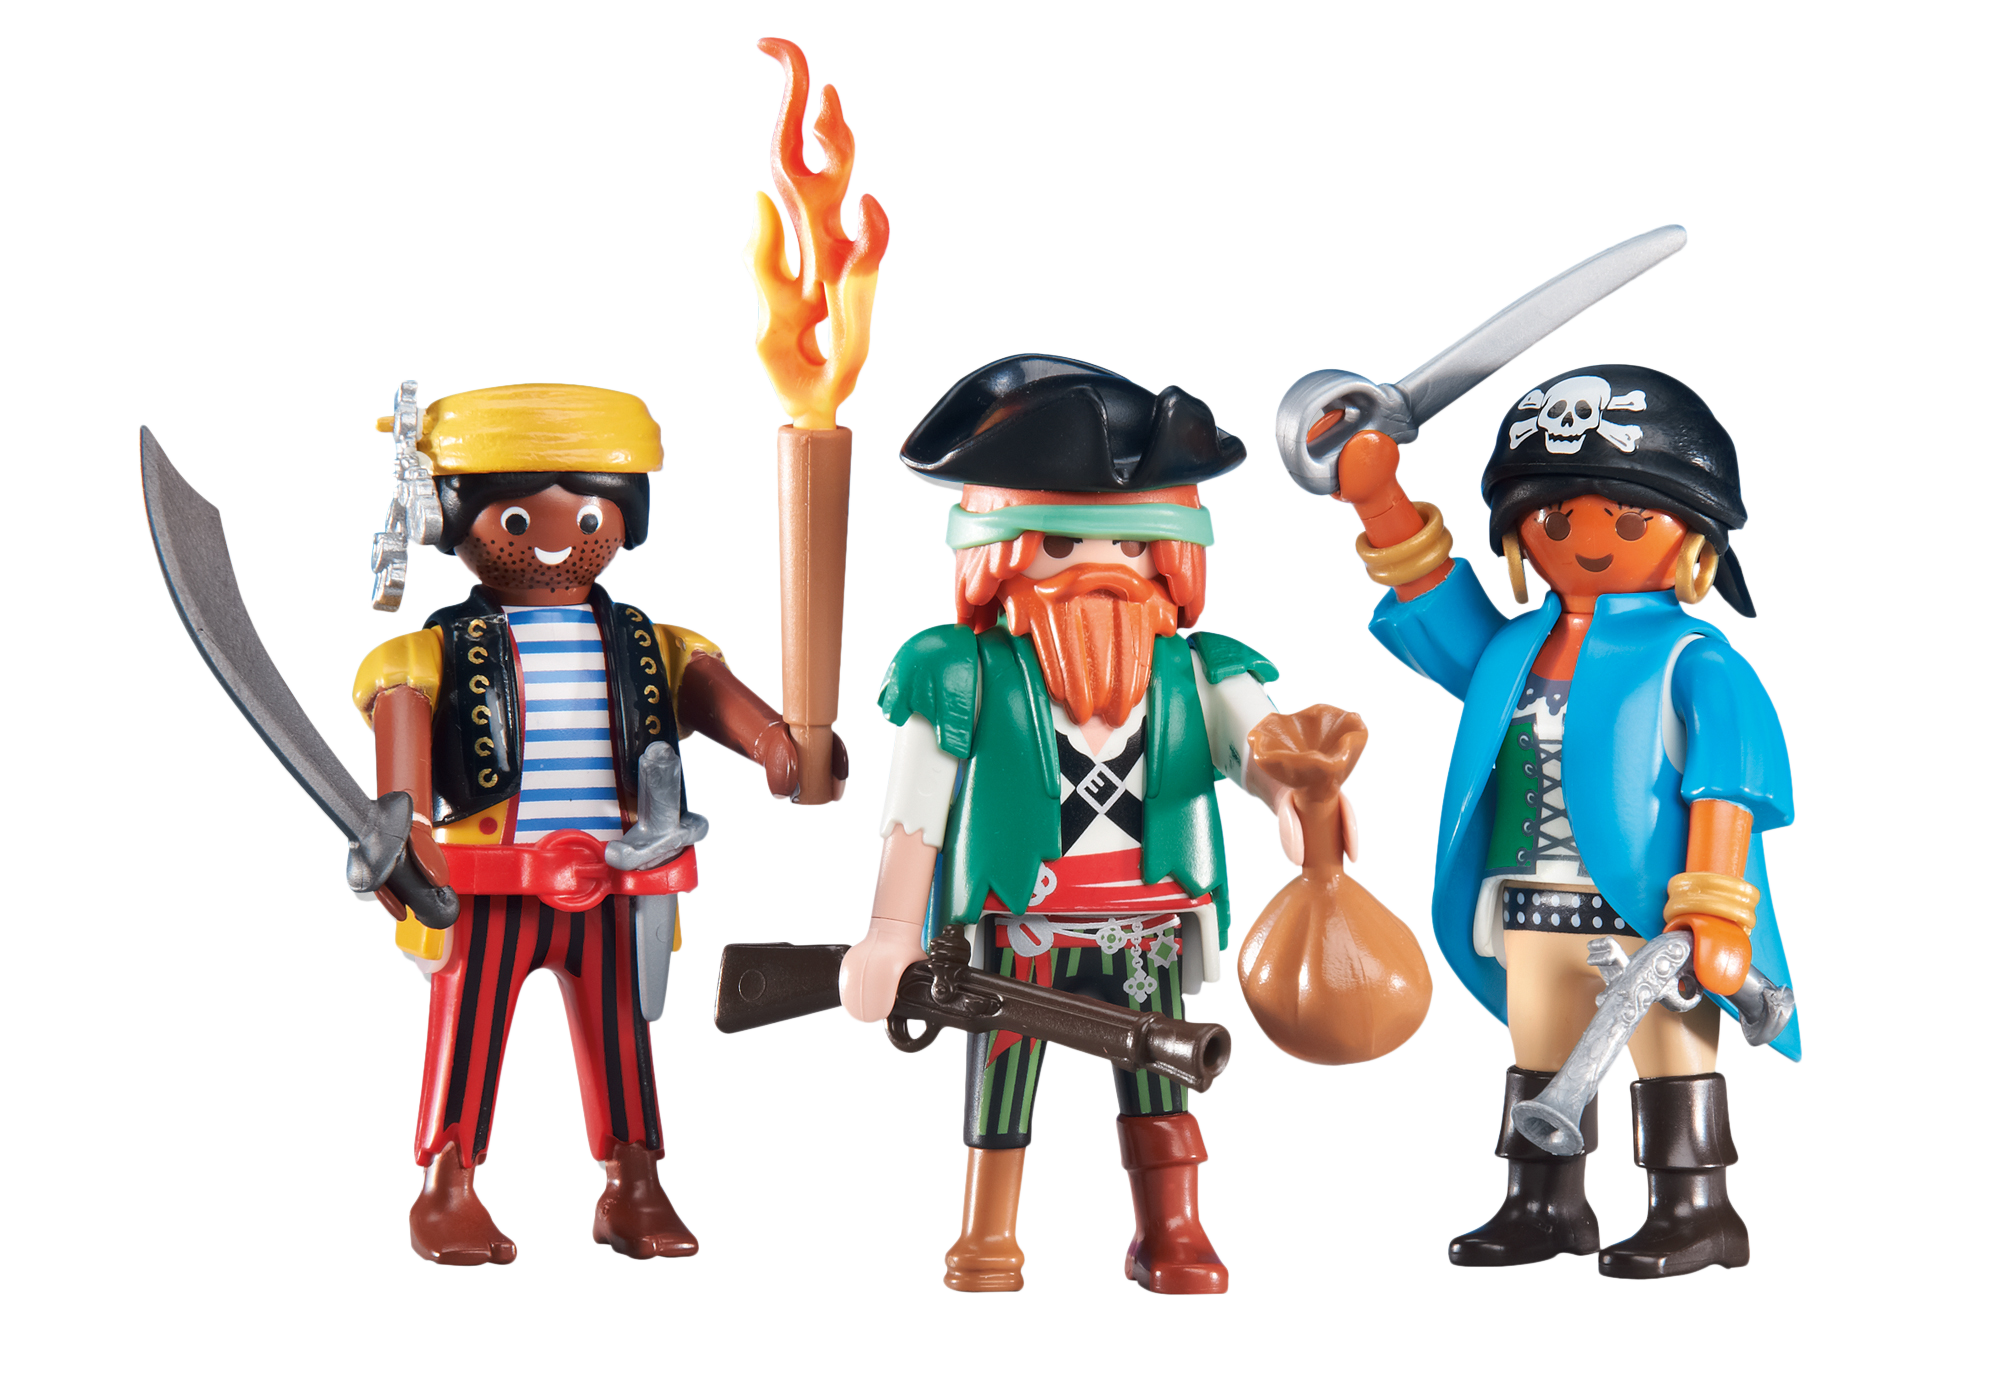 http://media.playmobil.com/i/playmobil/6434_product_detail/3 Piraten